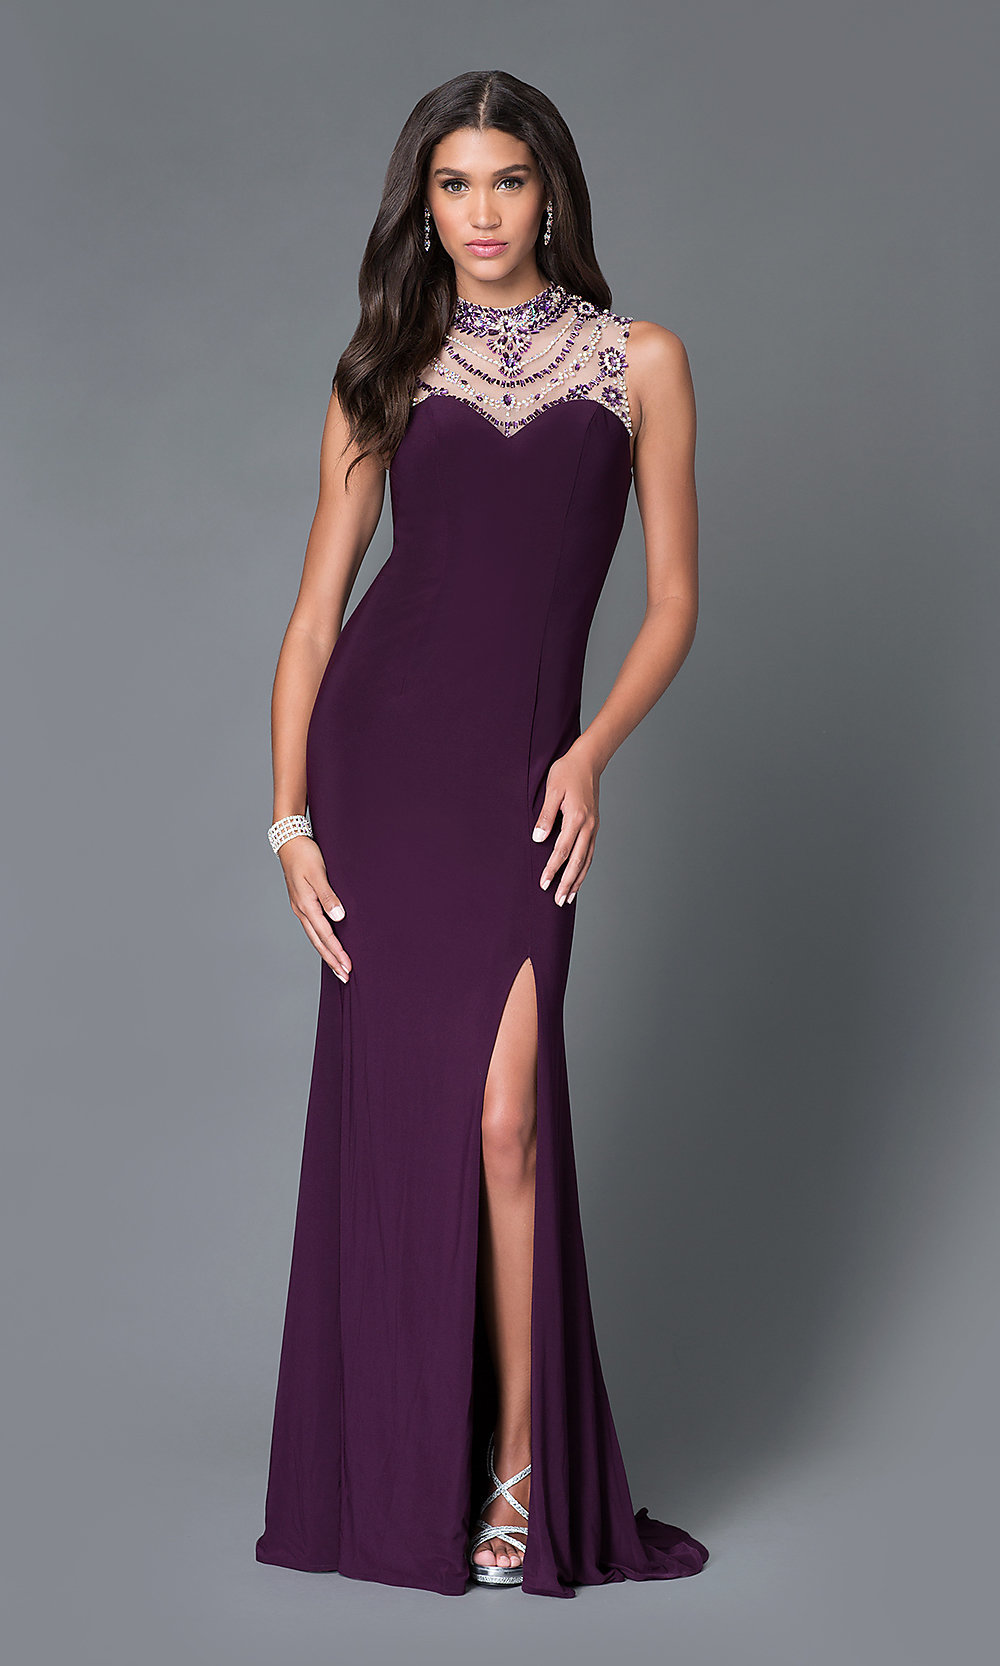 Prom Dresses Celebrity Dresses Sexy Evening Gowns: Long Purple ...